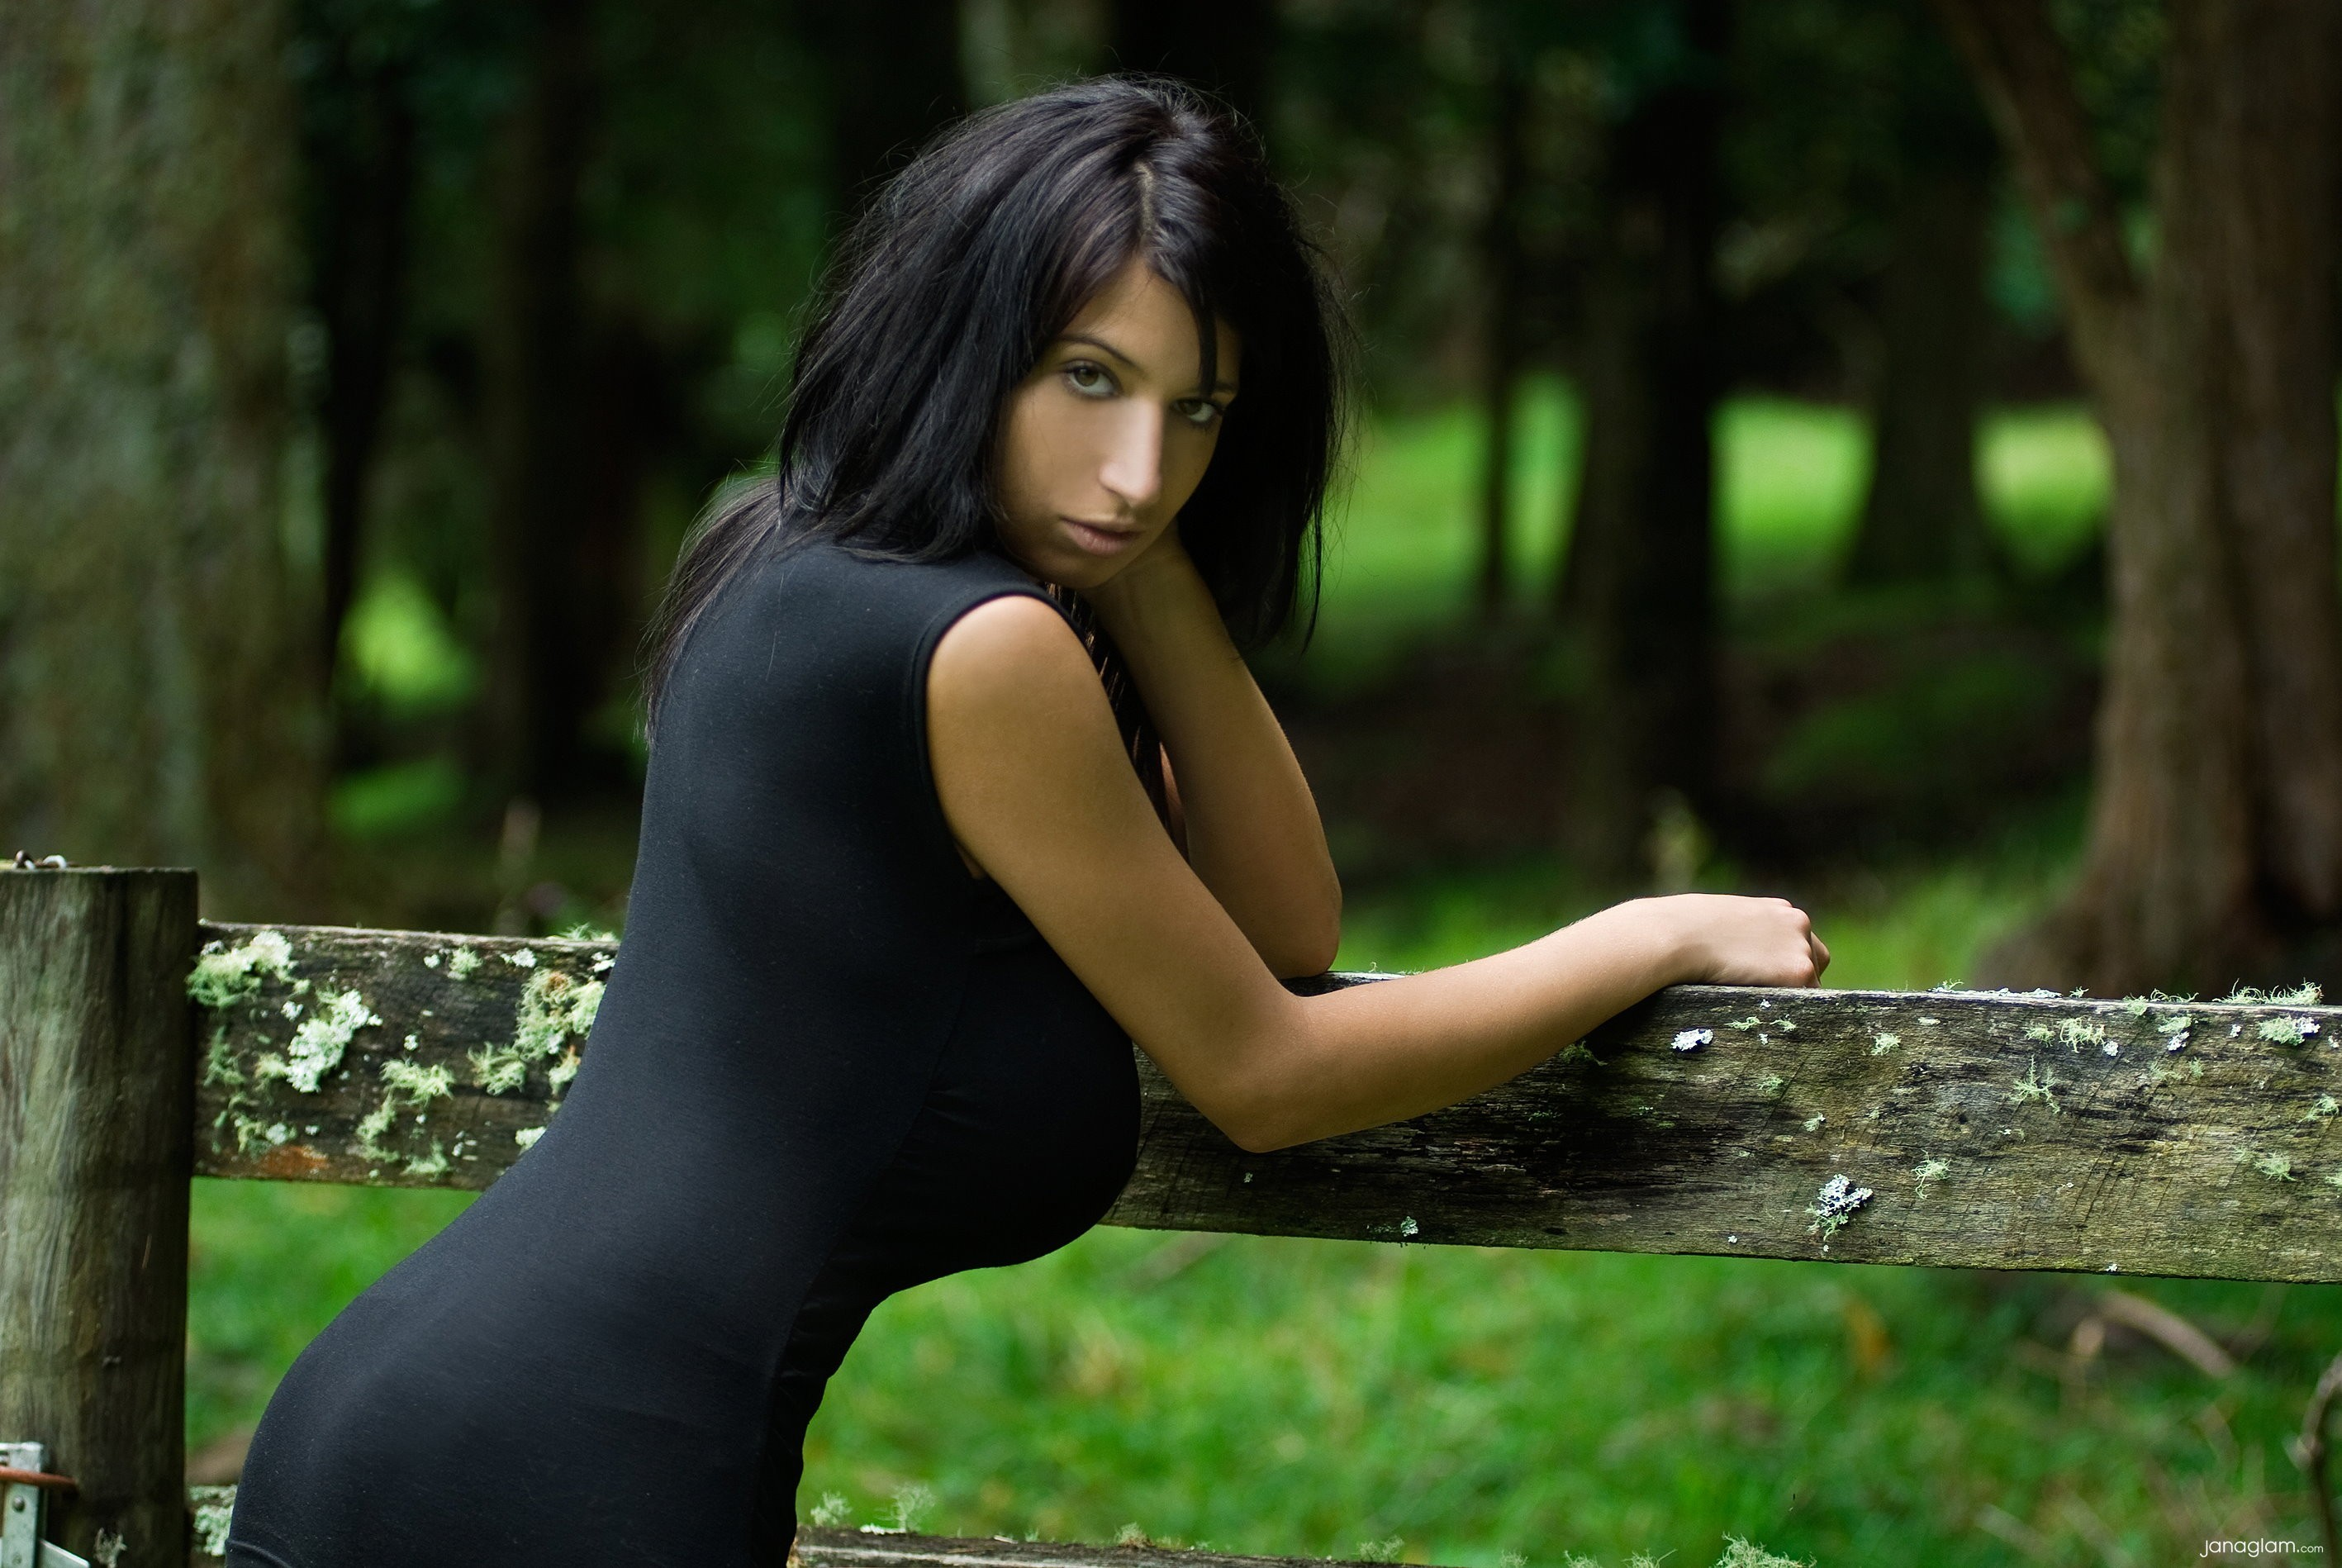 woman outdoors brunettes models black dress